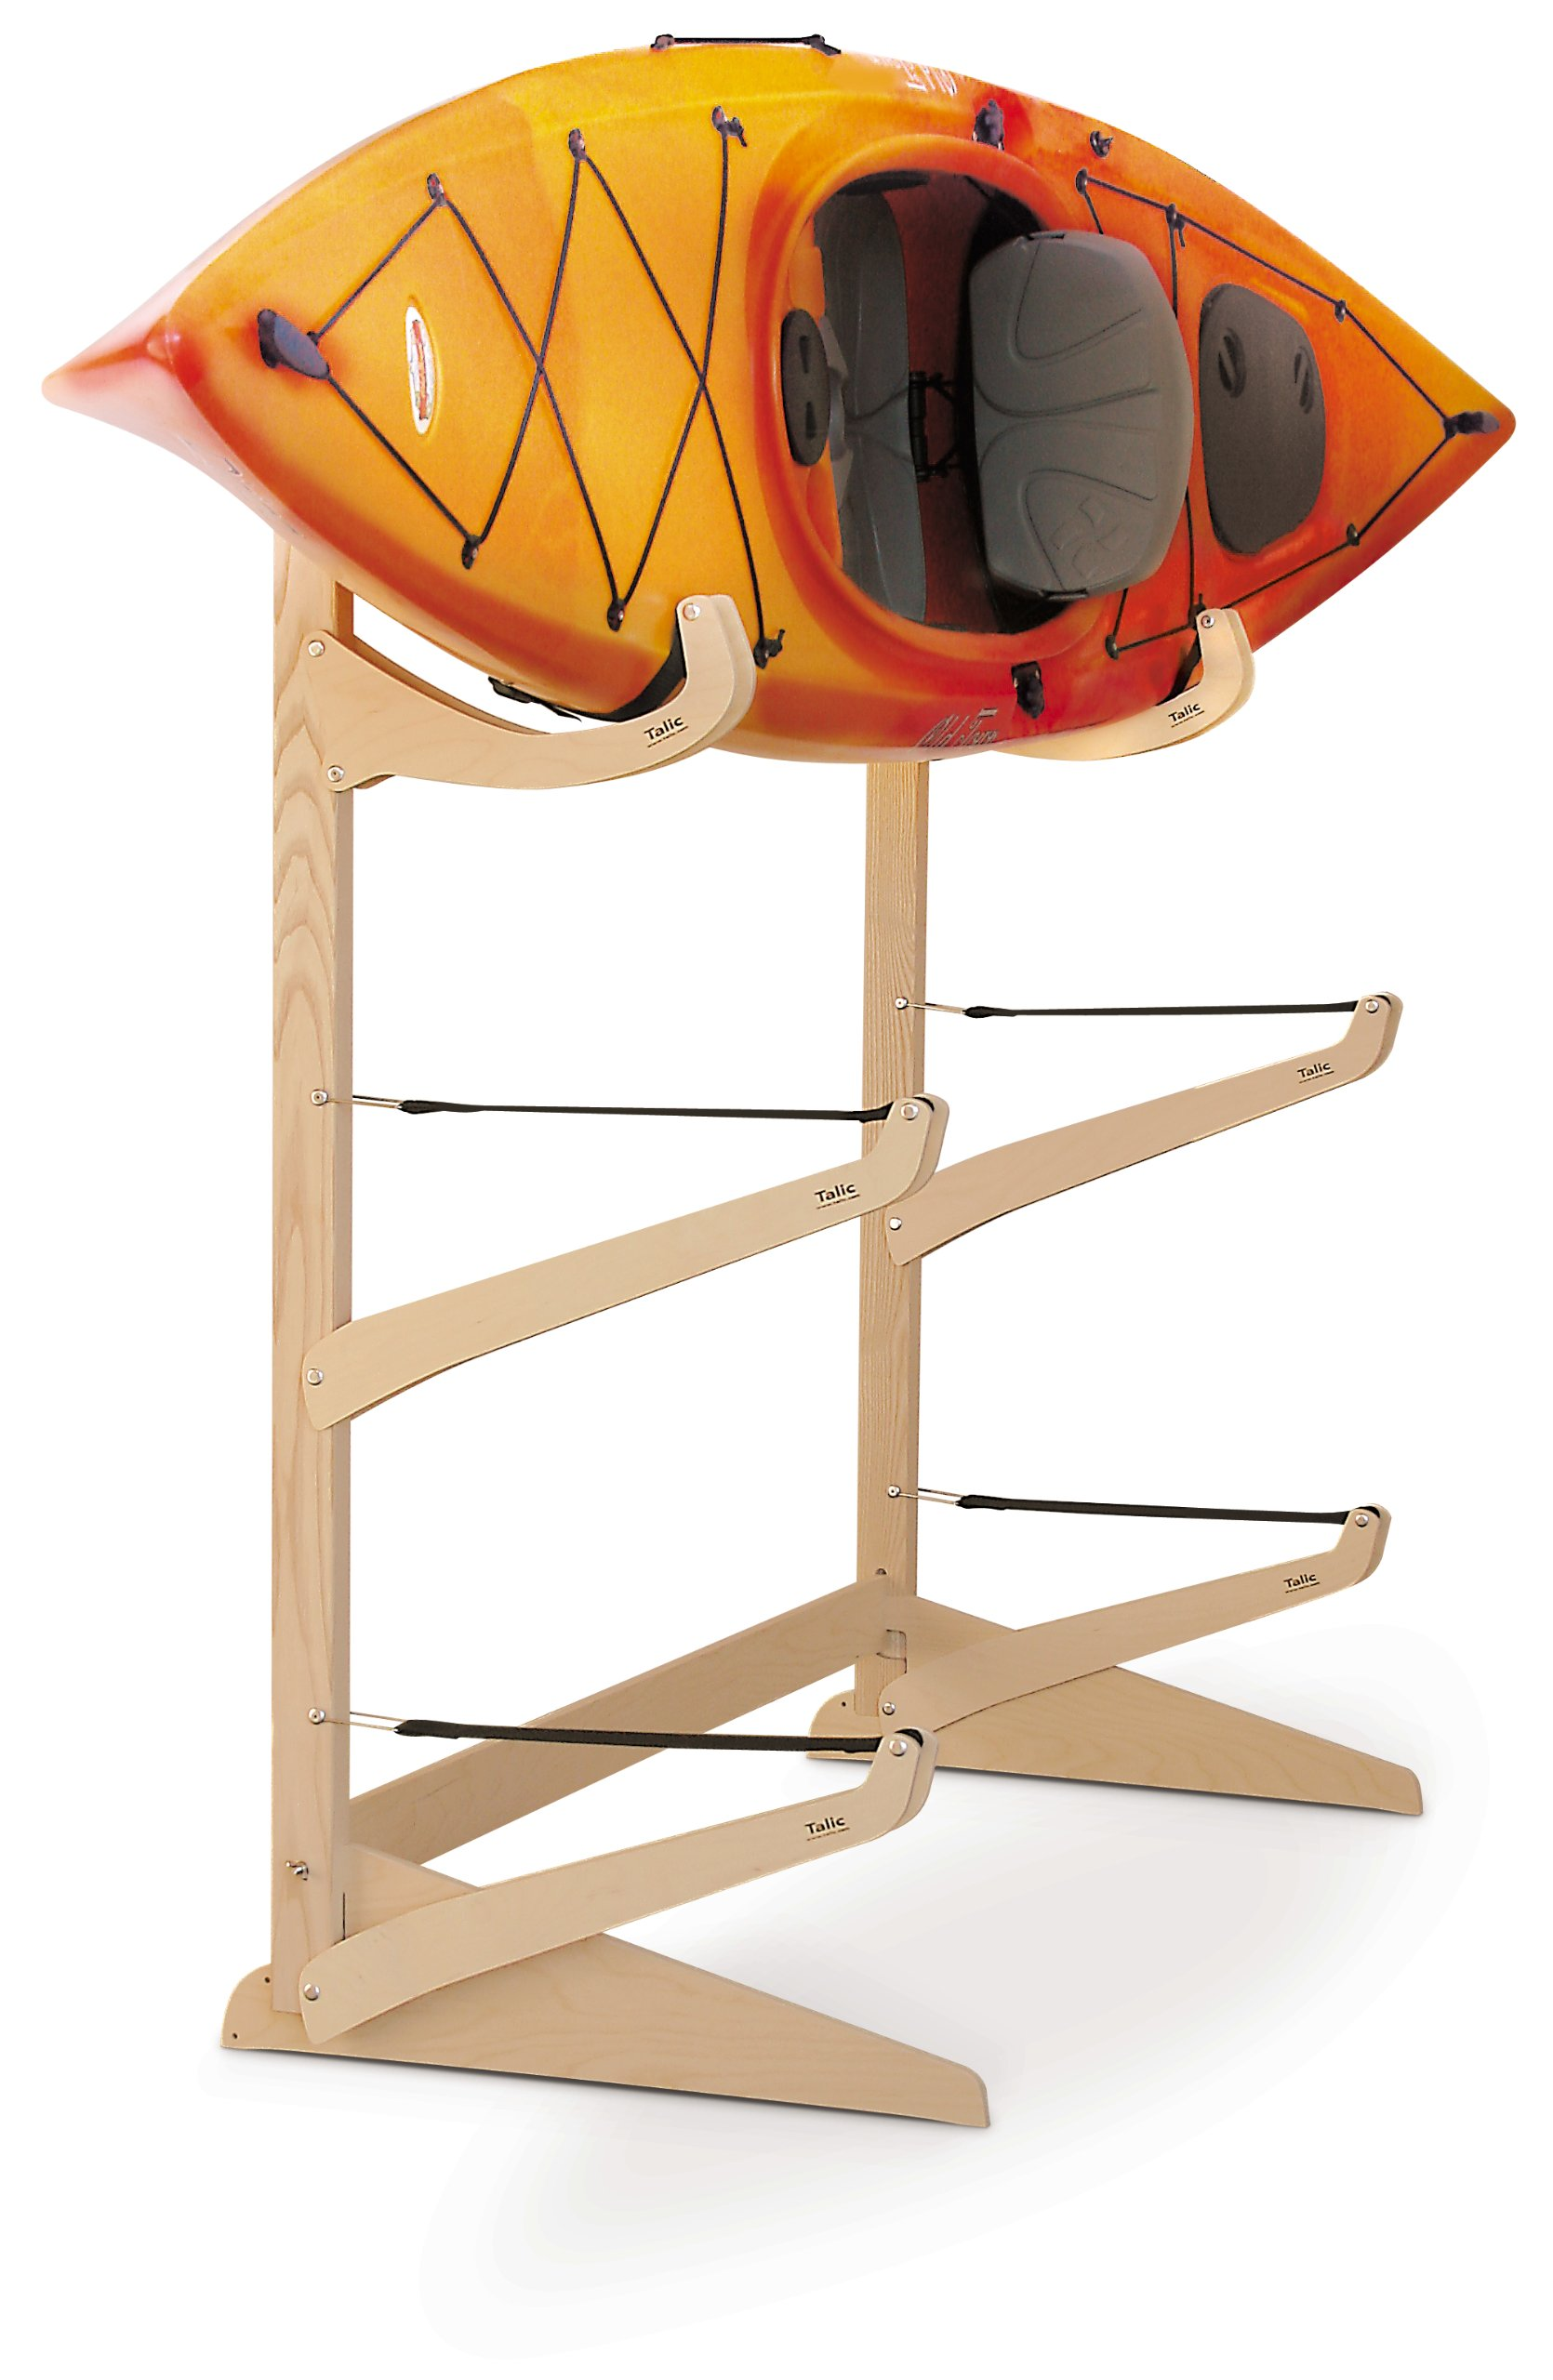 Talic Owasco - 3 Boat Freestanding Kayak Storage Rack